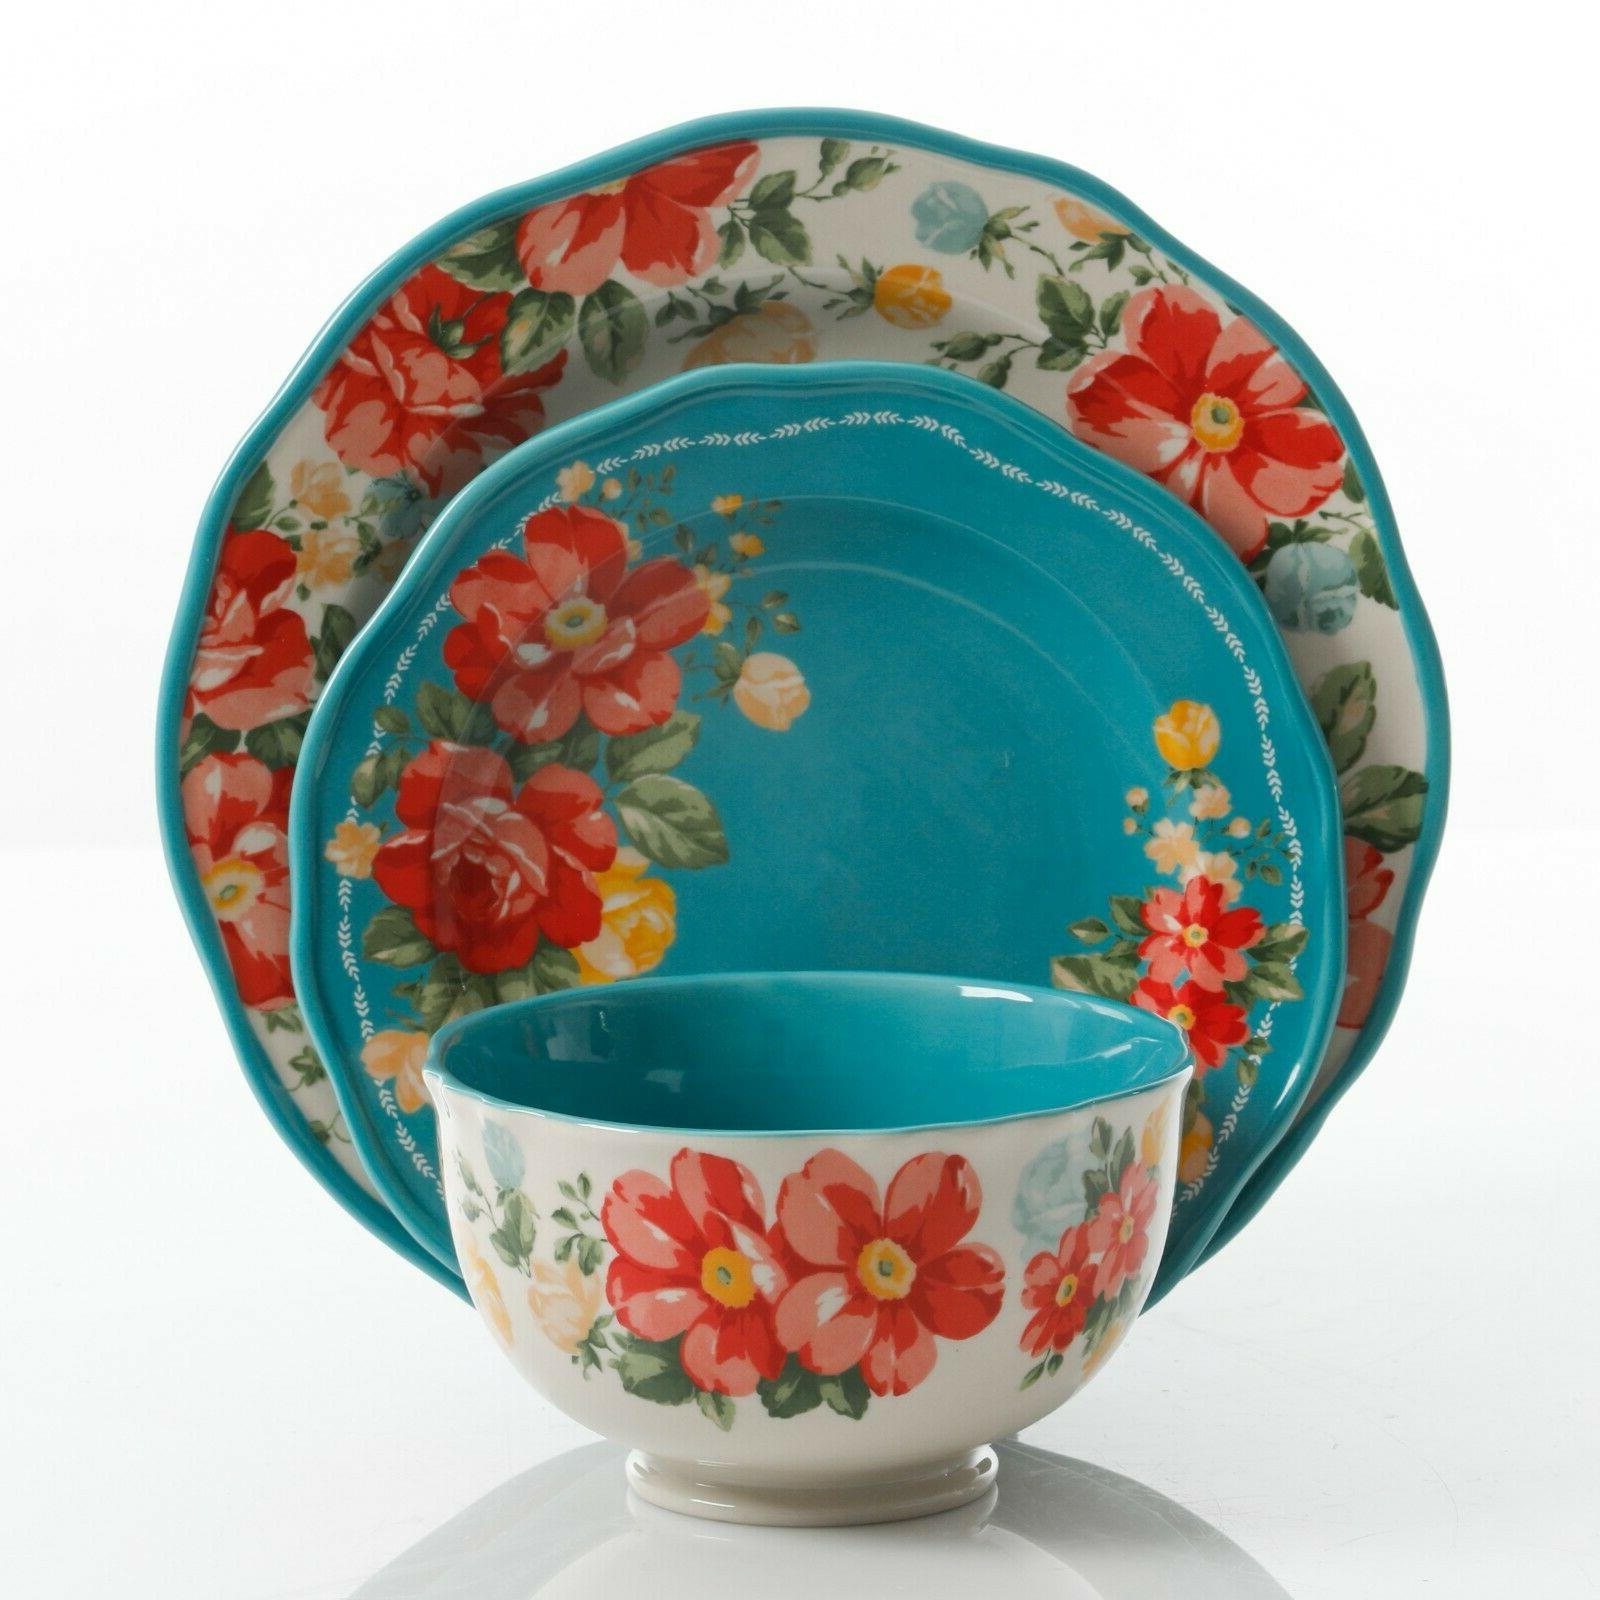 The Pioneer Woman Floral 12-Piece Teal